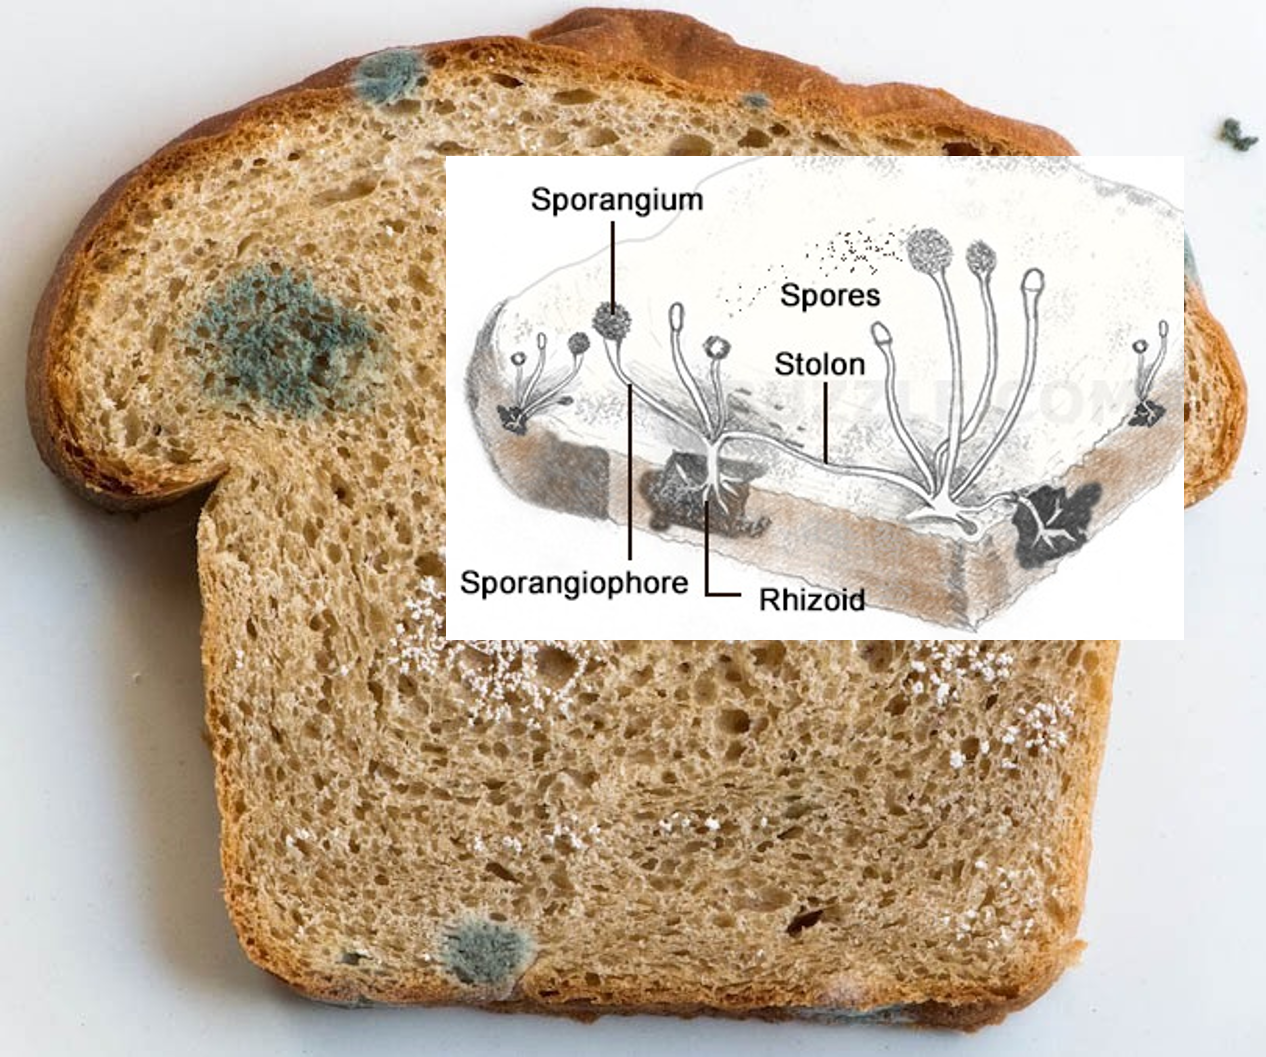 Cutting away visible mold growth from food will not remove all the mold or make it safe to eat,there are still hyphal fragments that invade deeply into the food like roots of a tree.